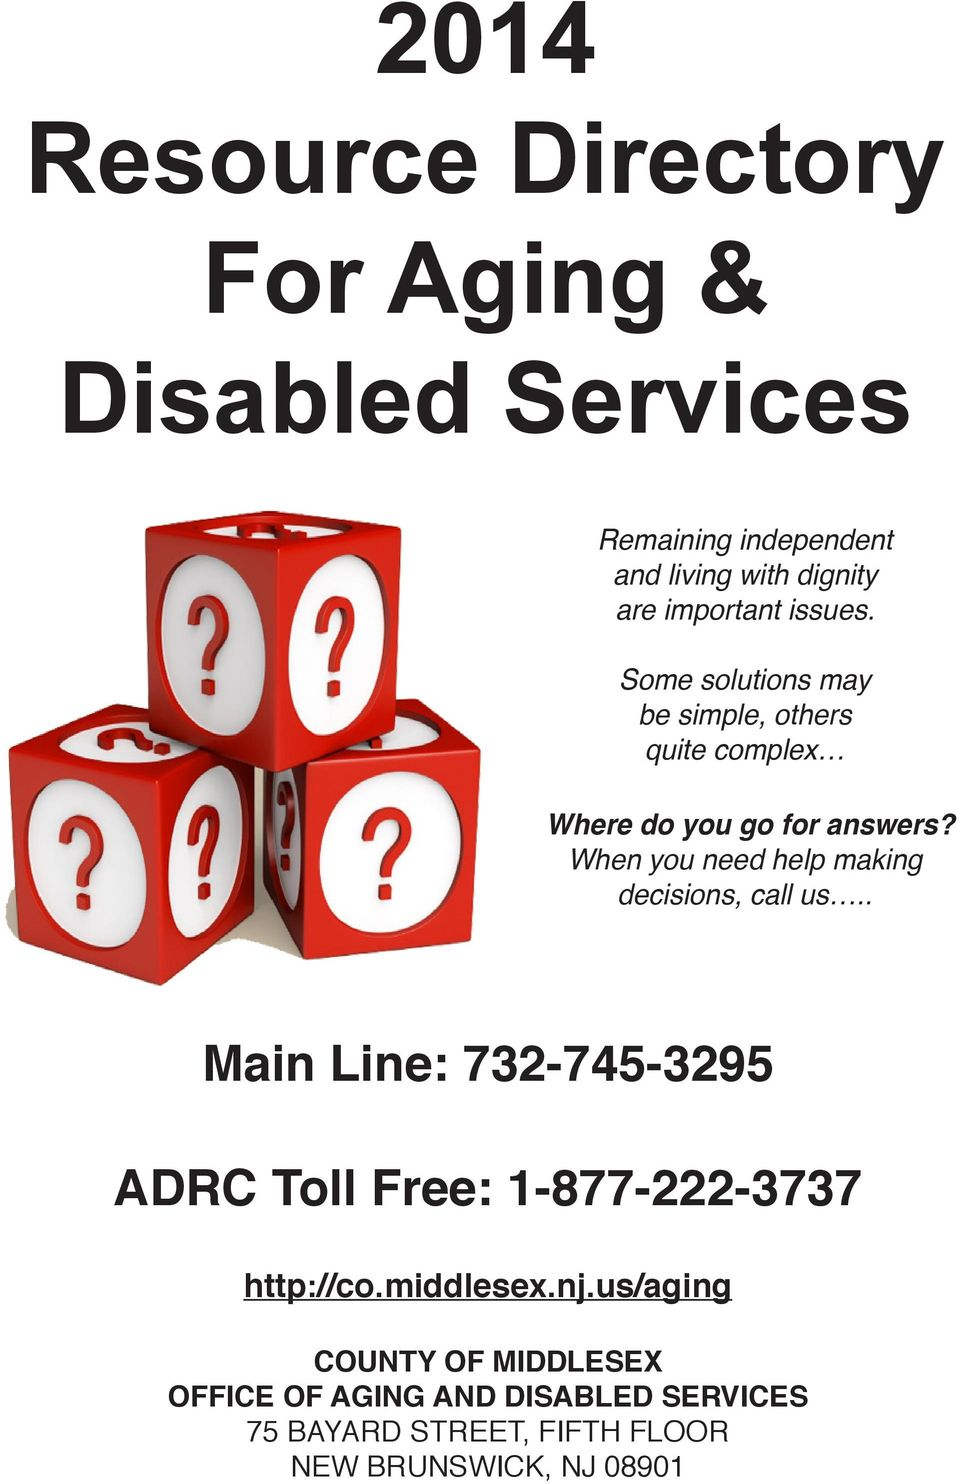 When you need help making decisions, call us.. Main Line: 732-745-3295 ADRC Toll Free: 1-877-222-3737 http://co.